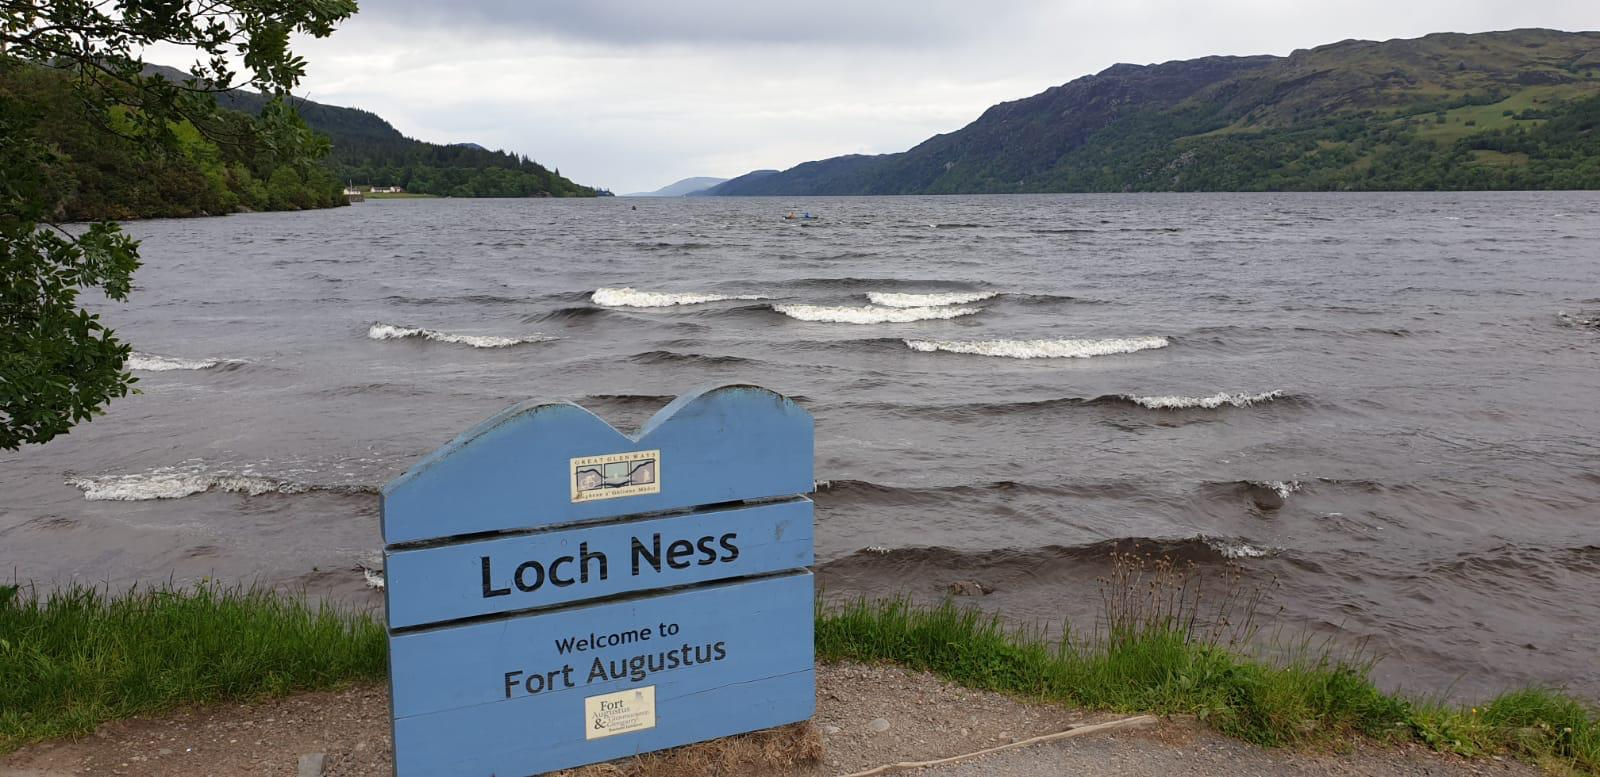 Loch Ness by Any Means – BDP CSR Challenge Completed!